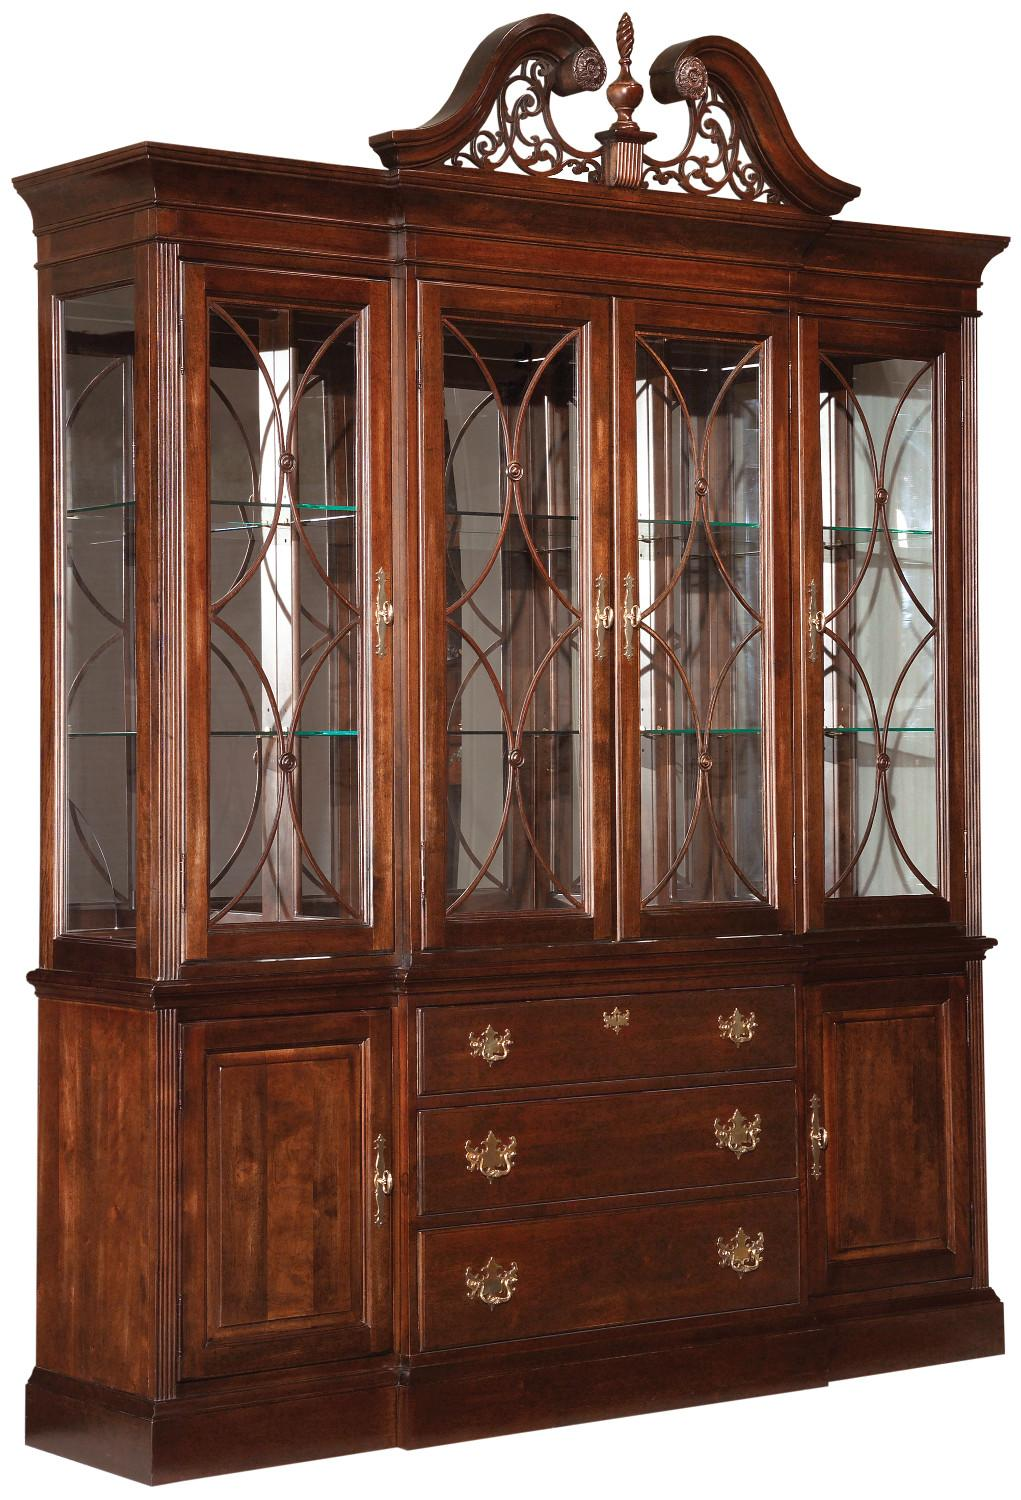 Ordinaire Carriage House Breakfront China Cabinet By Kincaid Furniture